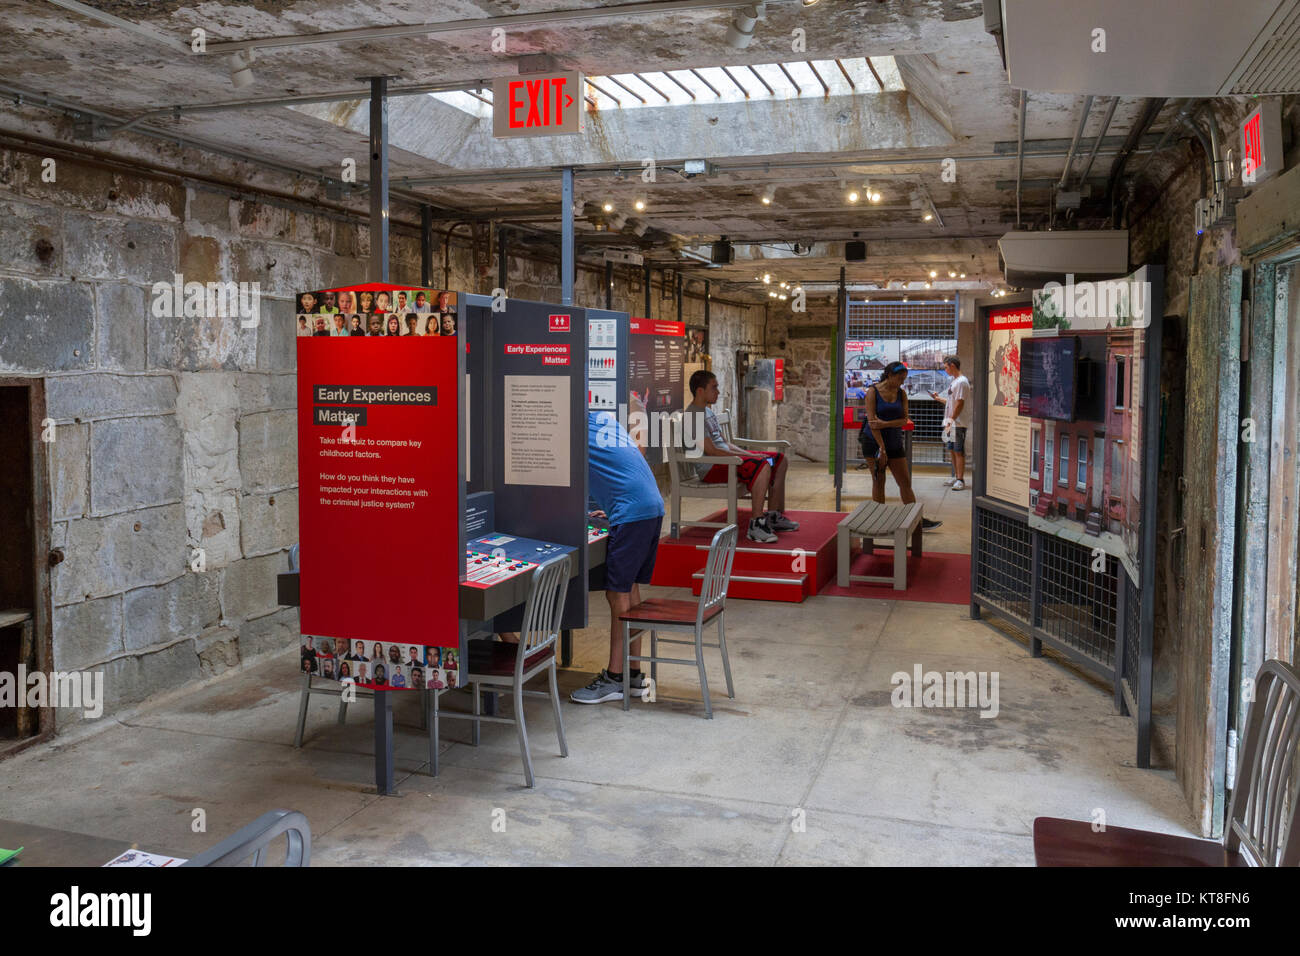 Exhibition 'Prisons Today' inside the Eastern State Penitentiary Historic Site, Philadelphia, Pennsylvania, - Stock Image